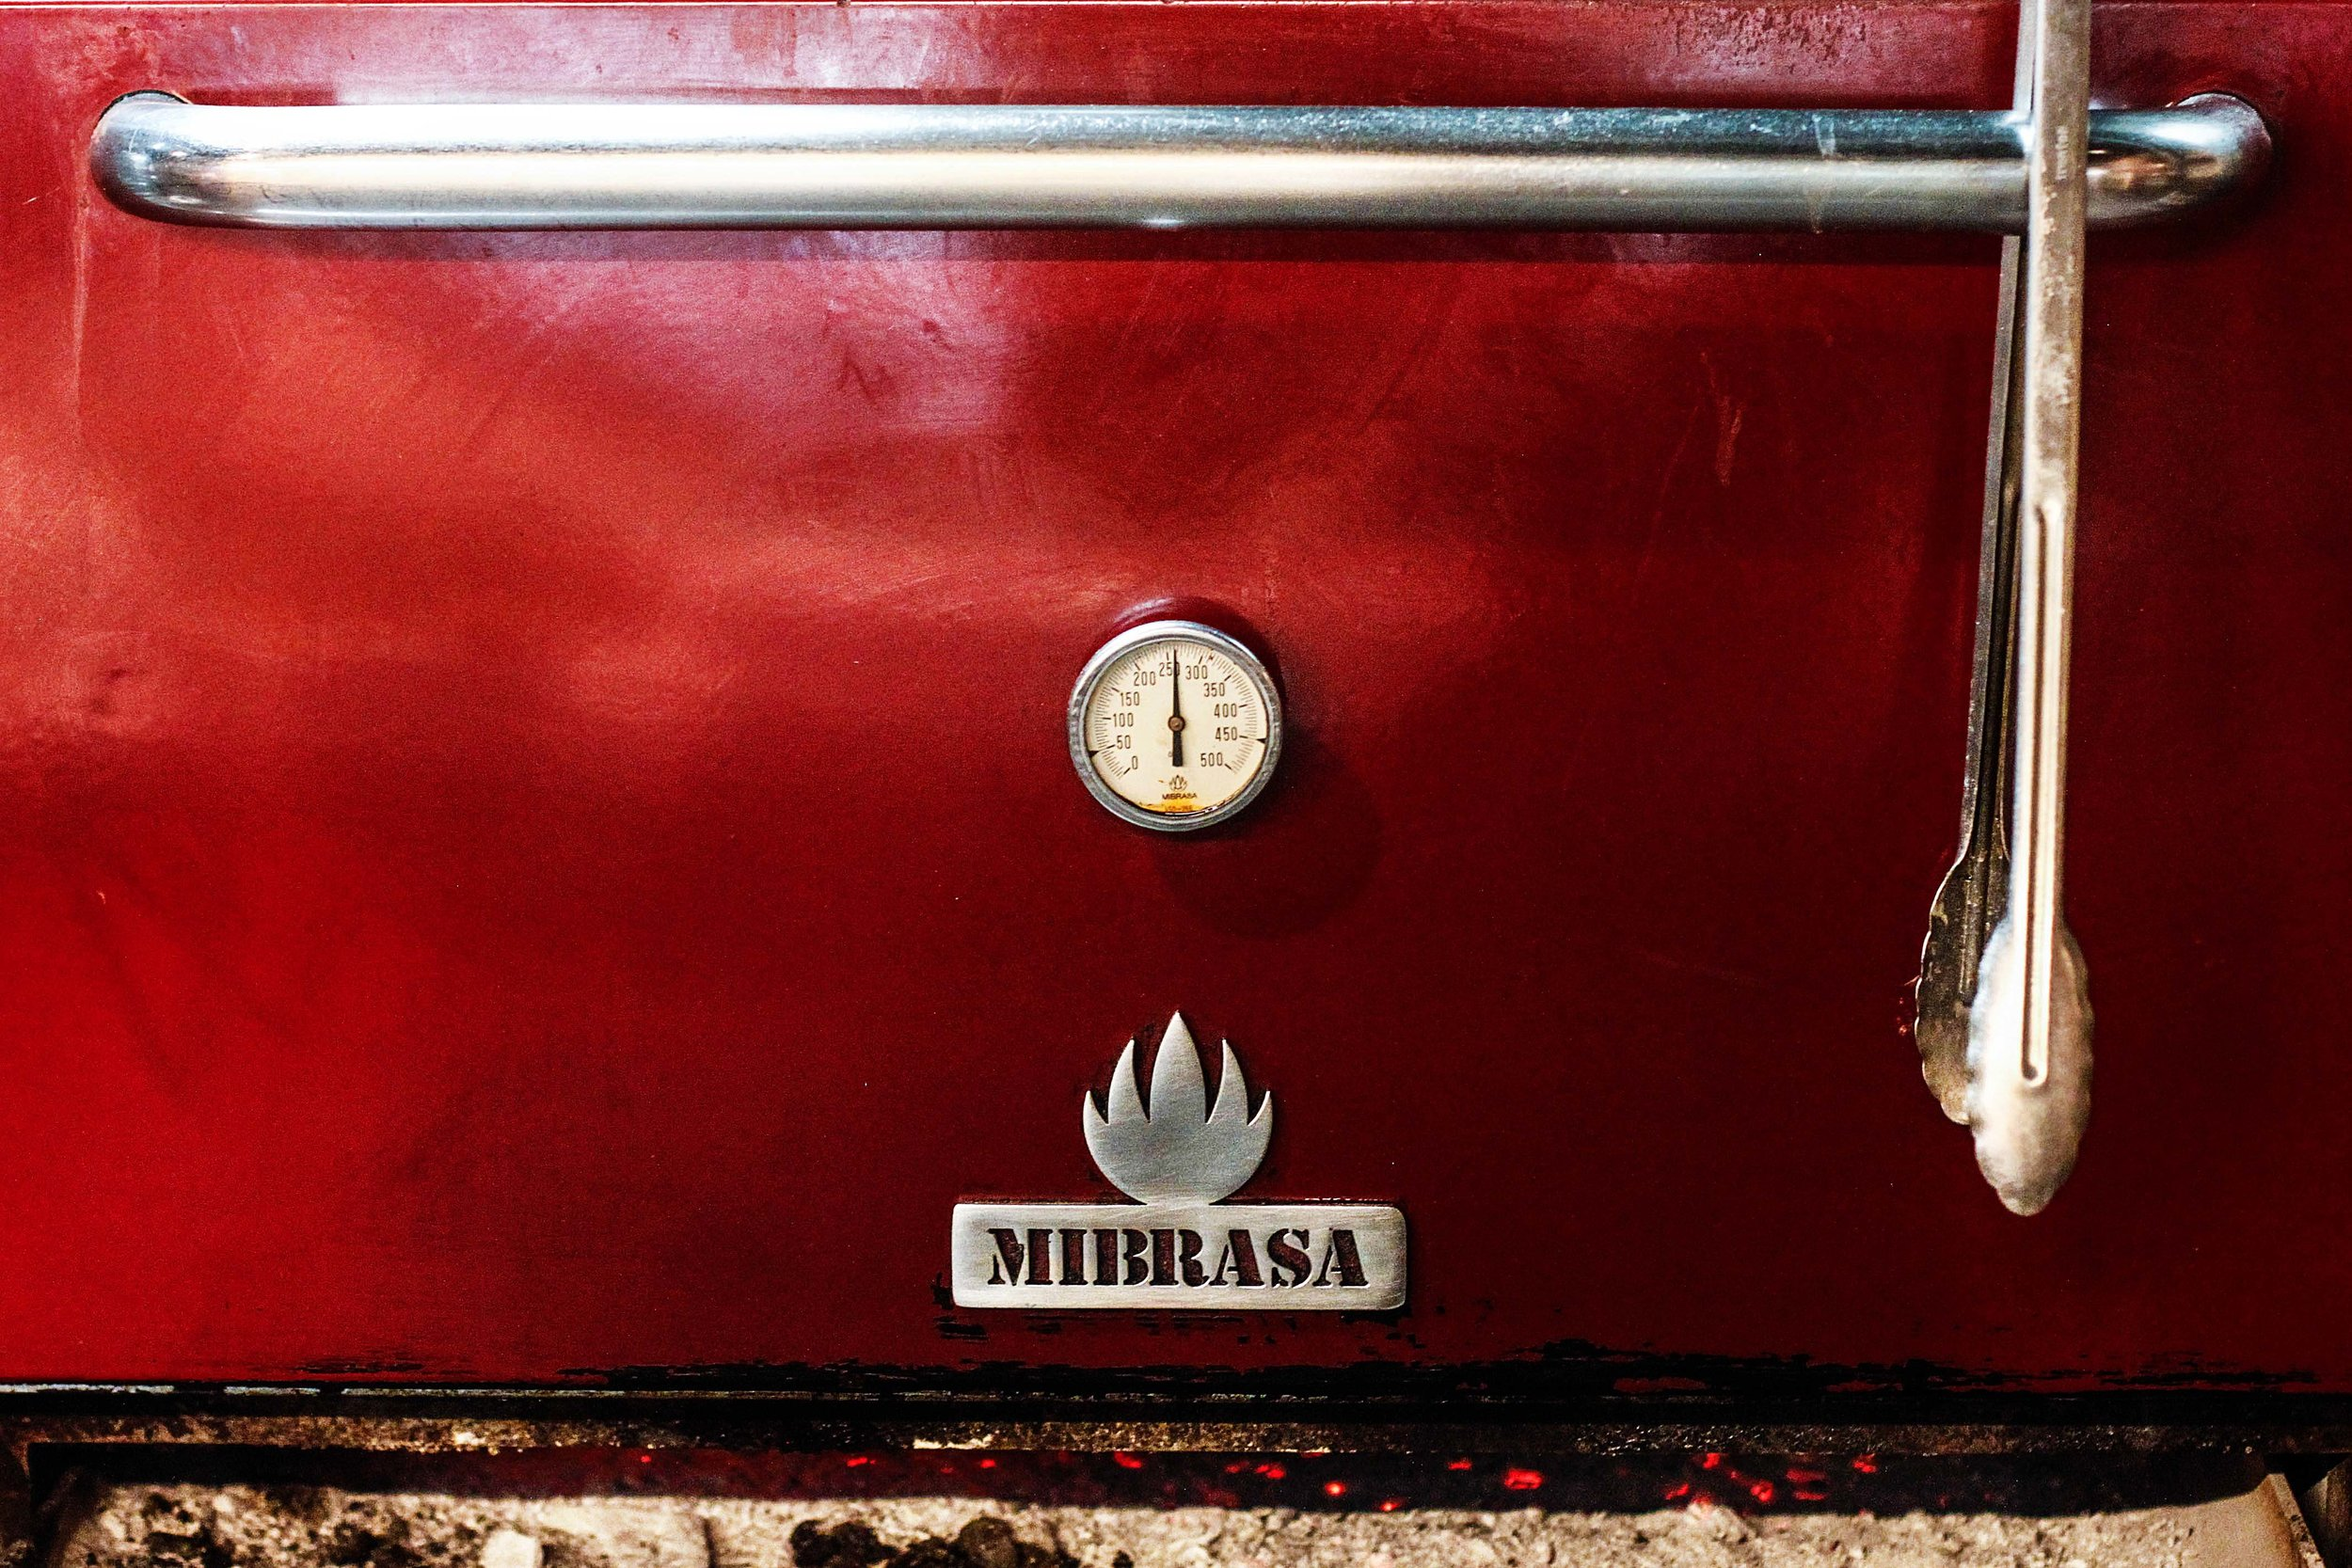 Mibrasa oven cooks fish perfectly